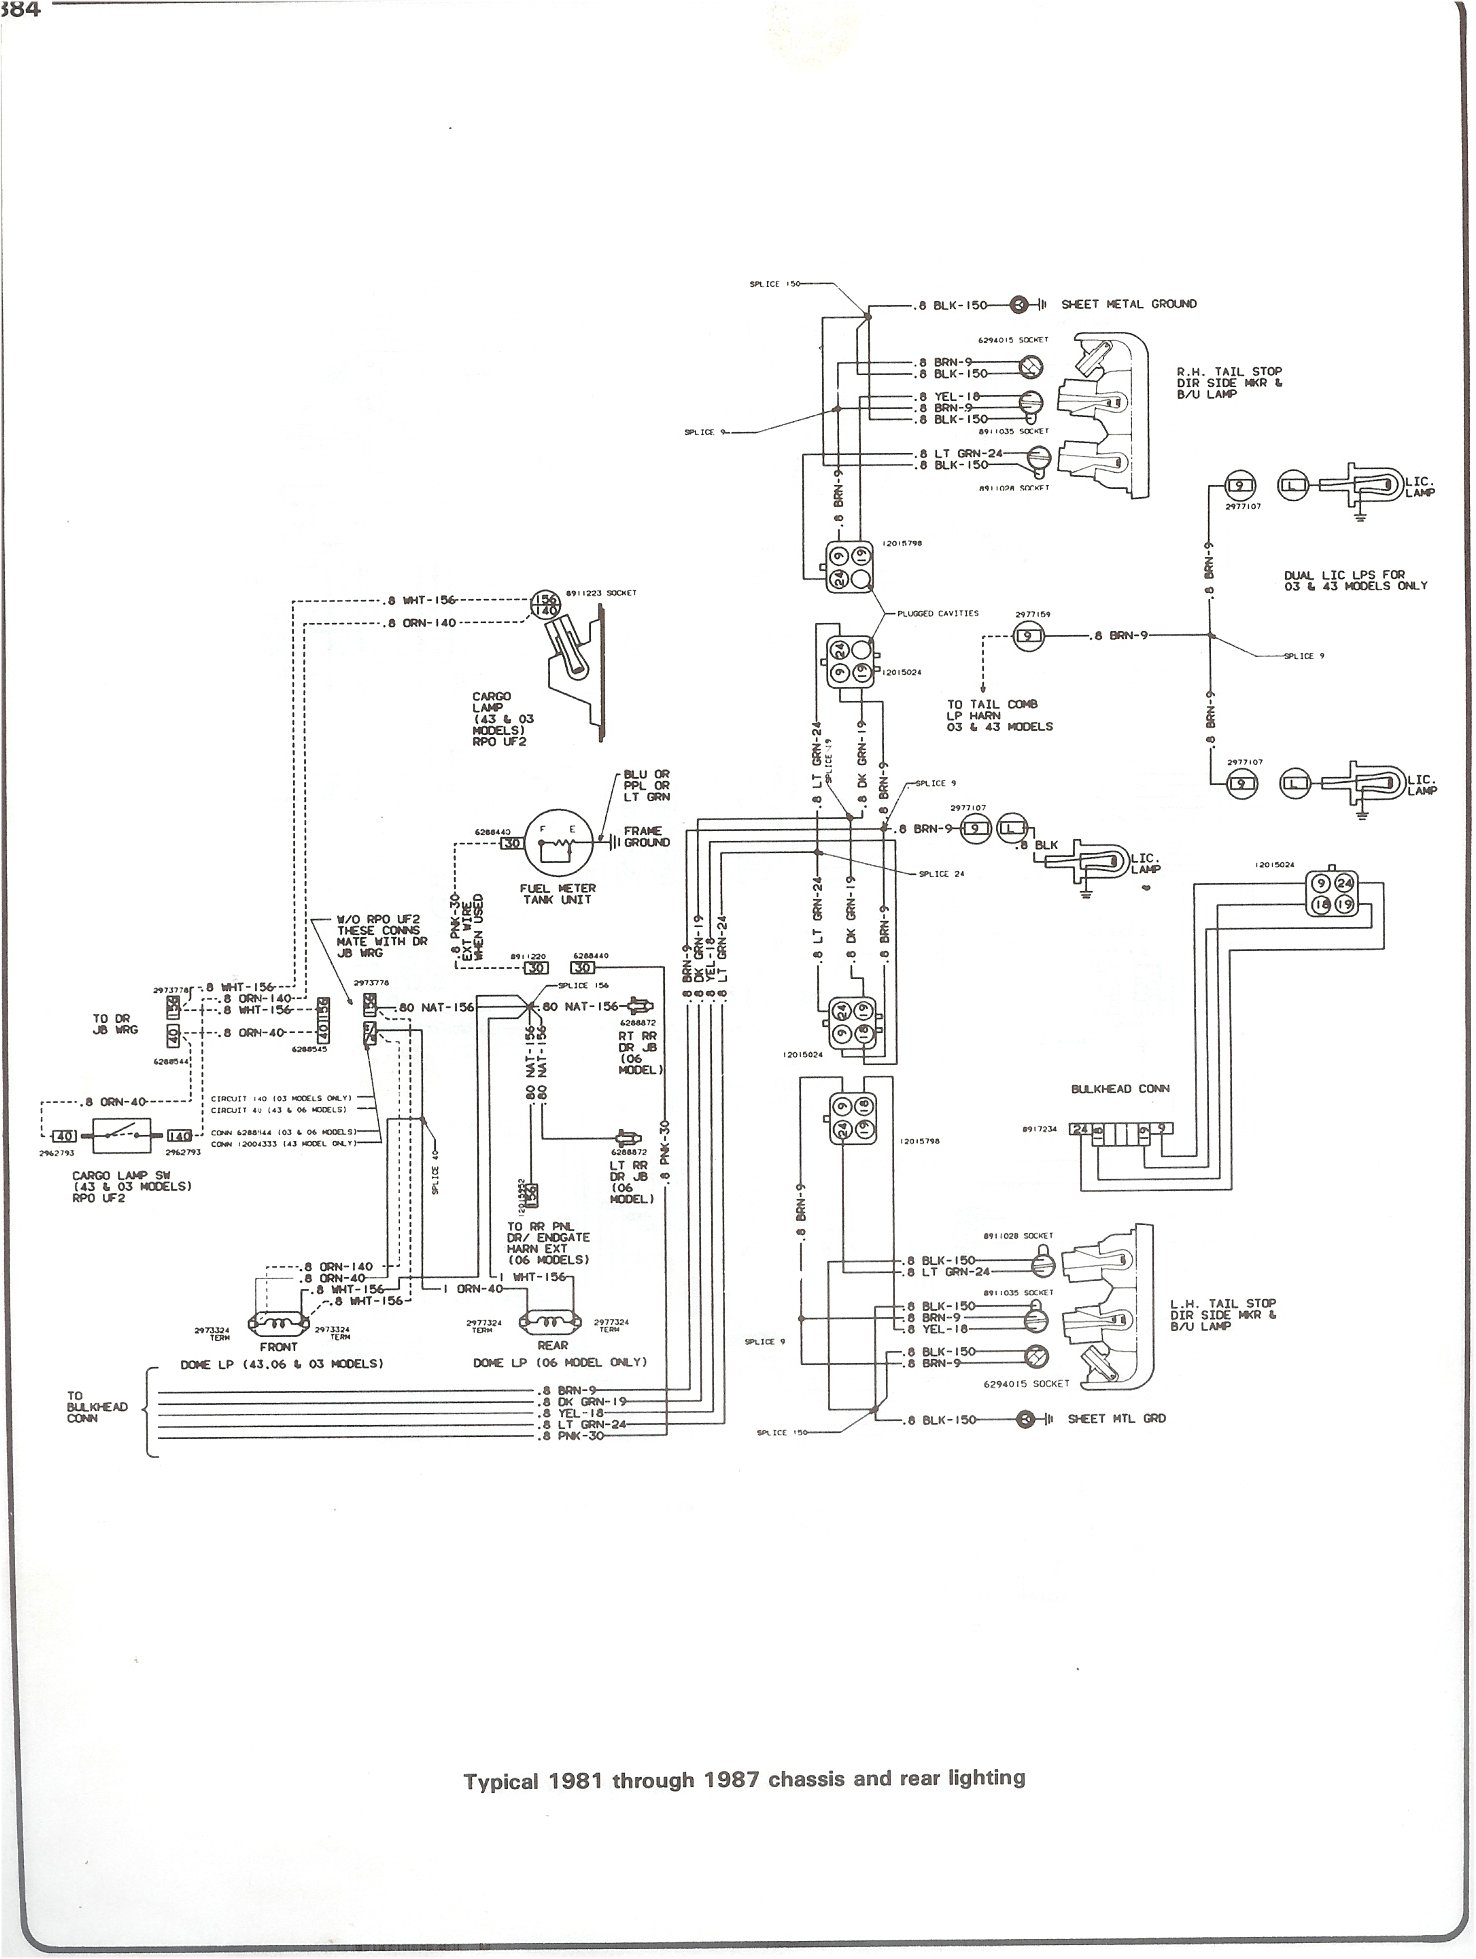 Buick Rendezvous 2004 Fuse Box Diagram together with 2009 F150 Blend Door Motor Replacement together with Duct Smoke Detector Wiring Diagram further 9n8i04 additionally EP0546370A1. on hvac control wiring diagram